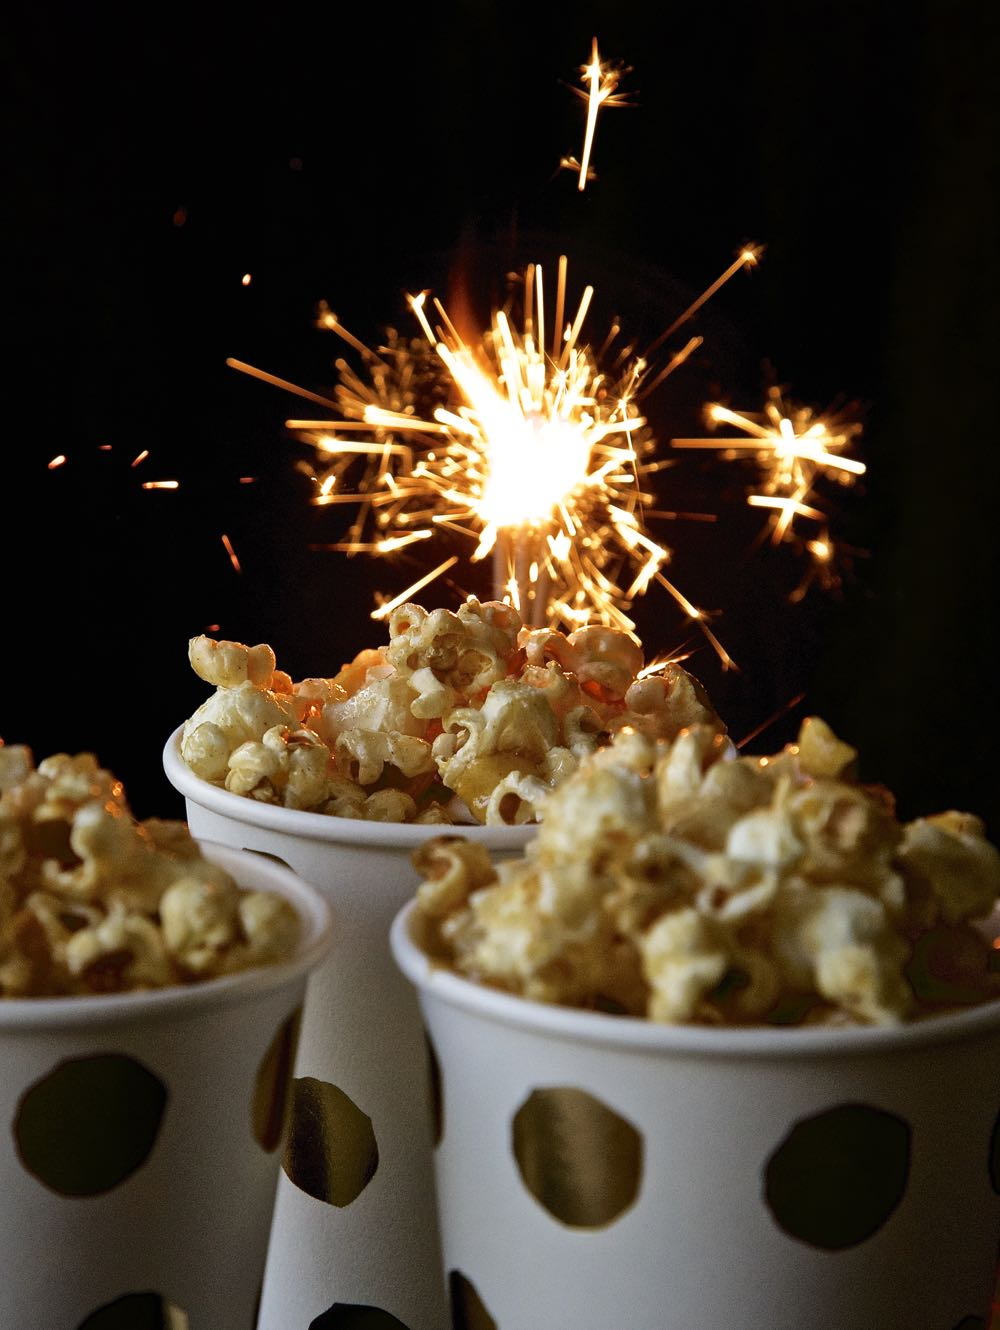 vegan-toffee-apple-popcorn-for-bonfire-night